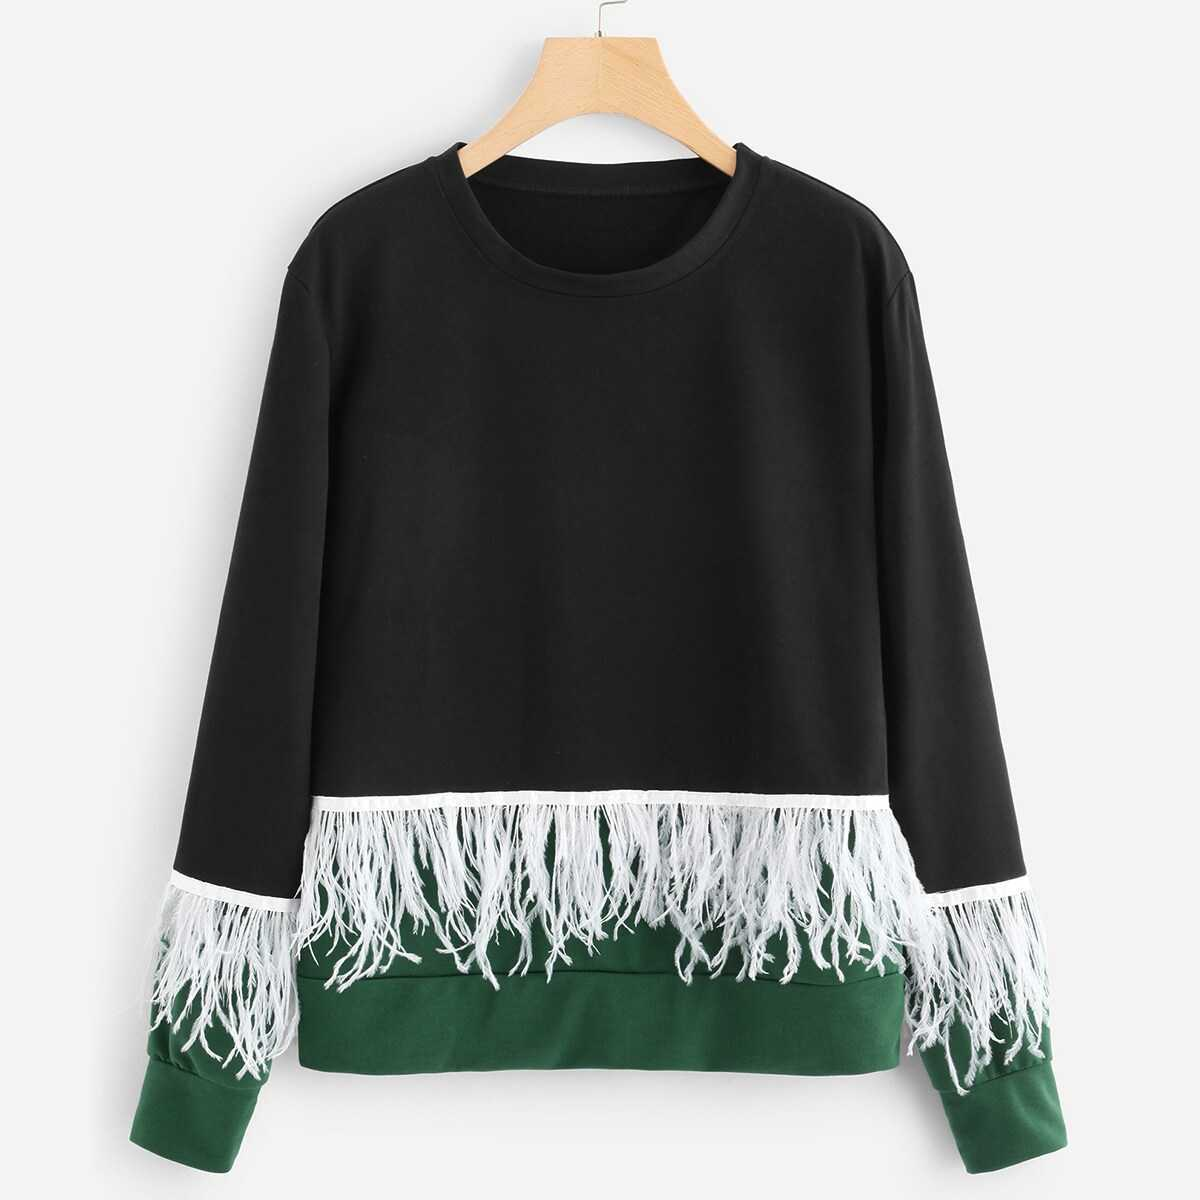 e8a152a4b938 Contrast Feather Color Block Sweatshirt Shein | GOOFASH SHOP